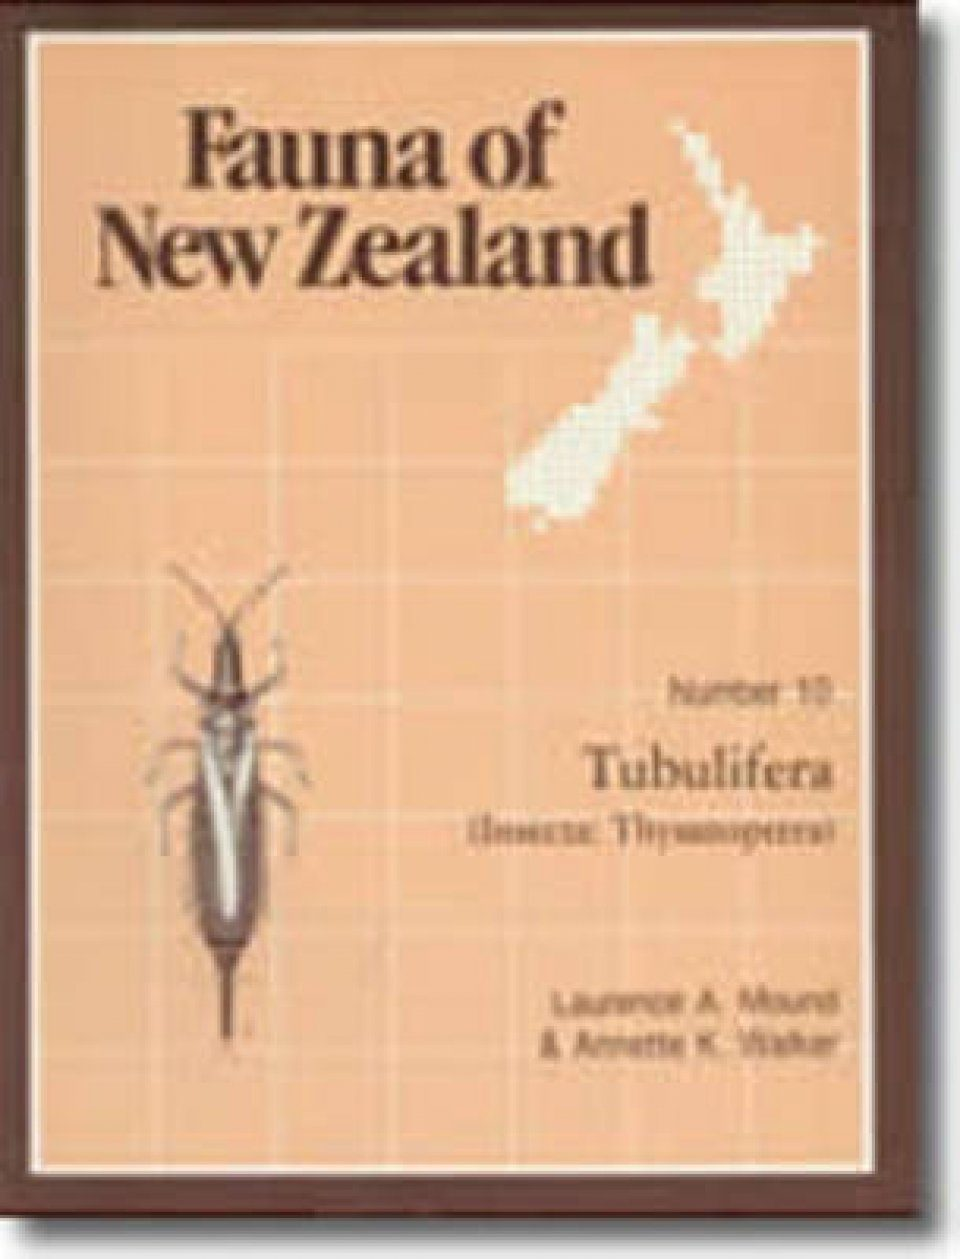 Fauna of New Zealand, No 10: Tubulifera (Insecta: Thysanoptera)